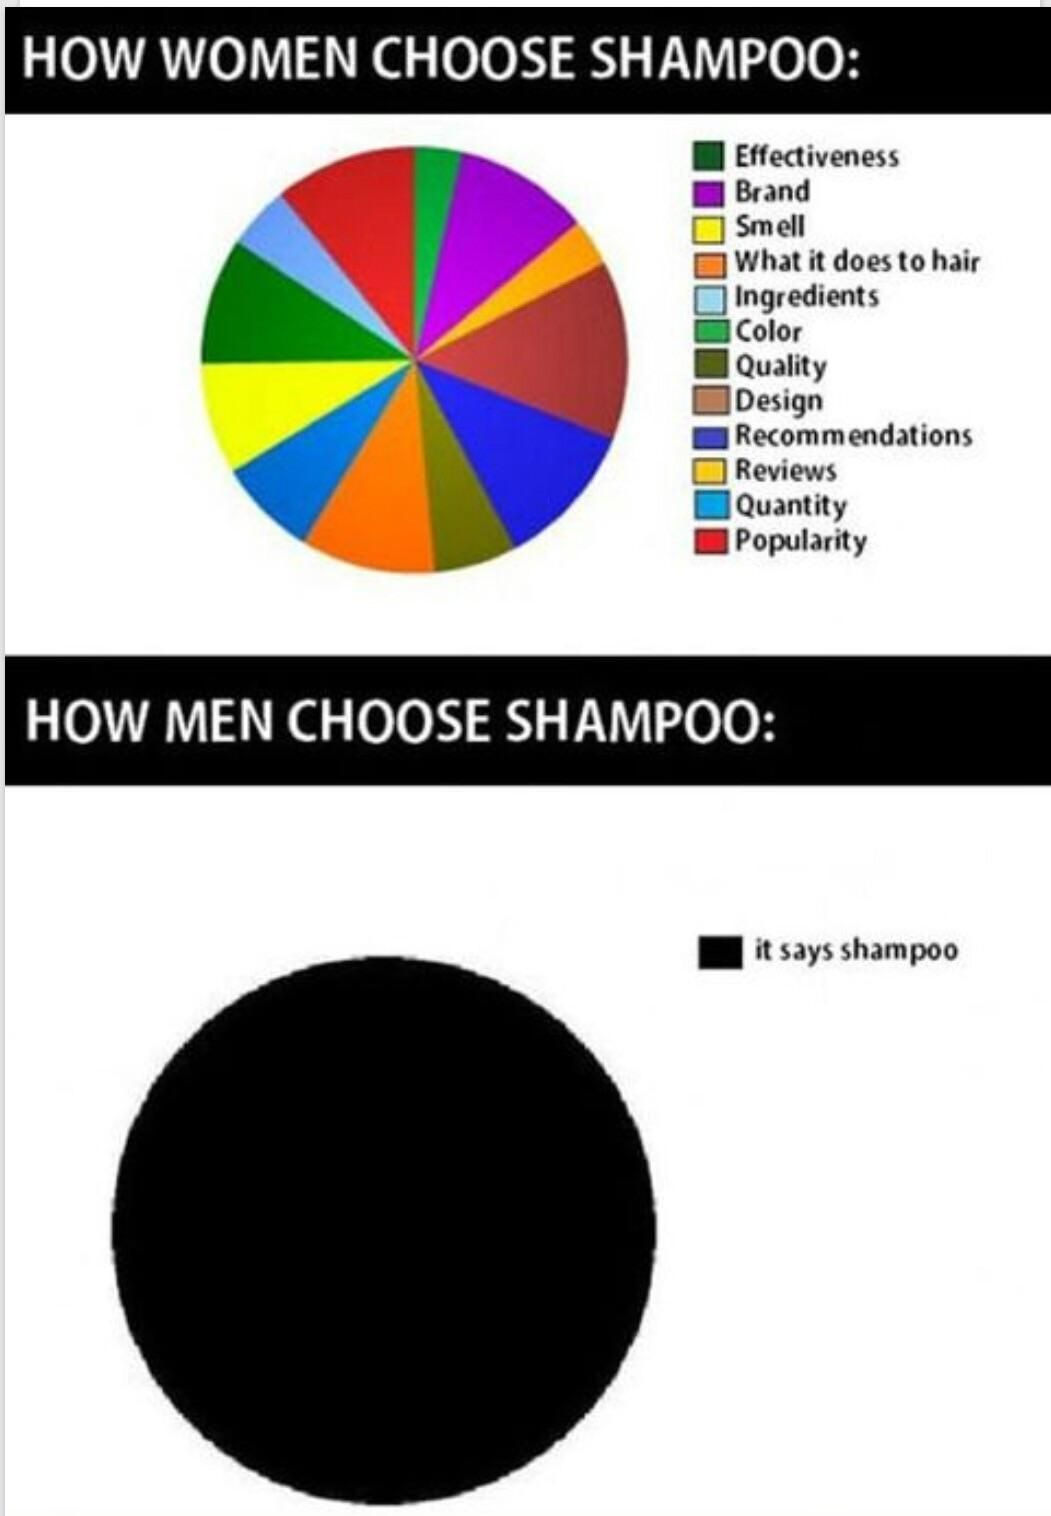 The way men choose shampoo